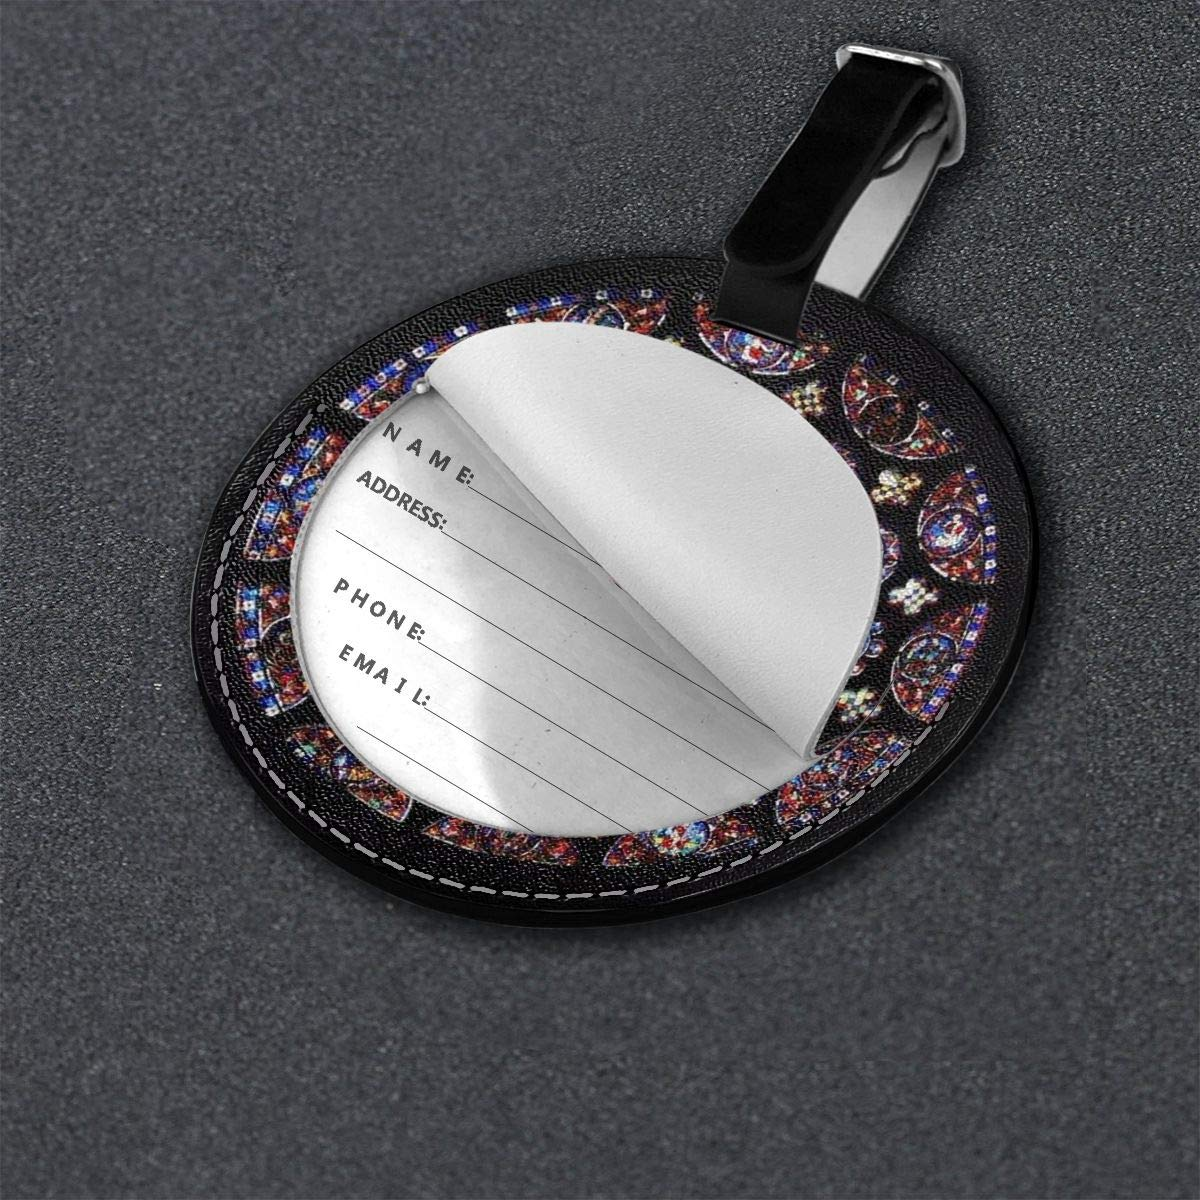 Free-2 Round Glass Windows in The Church Luggage Tag 3D Print Leather Travel Bag ID Card